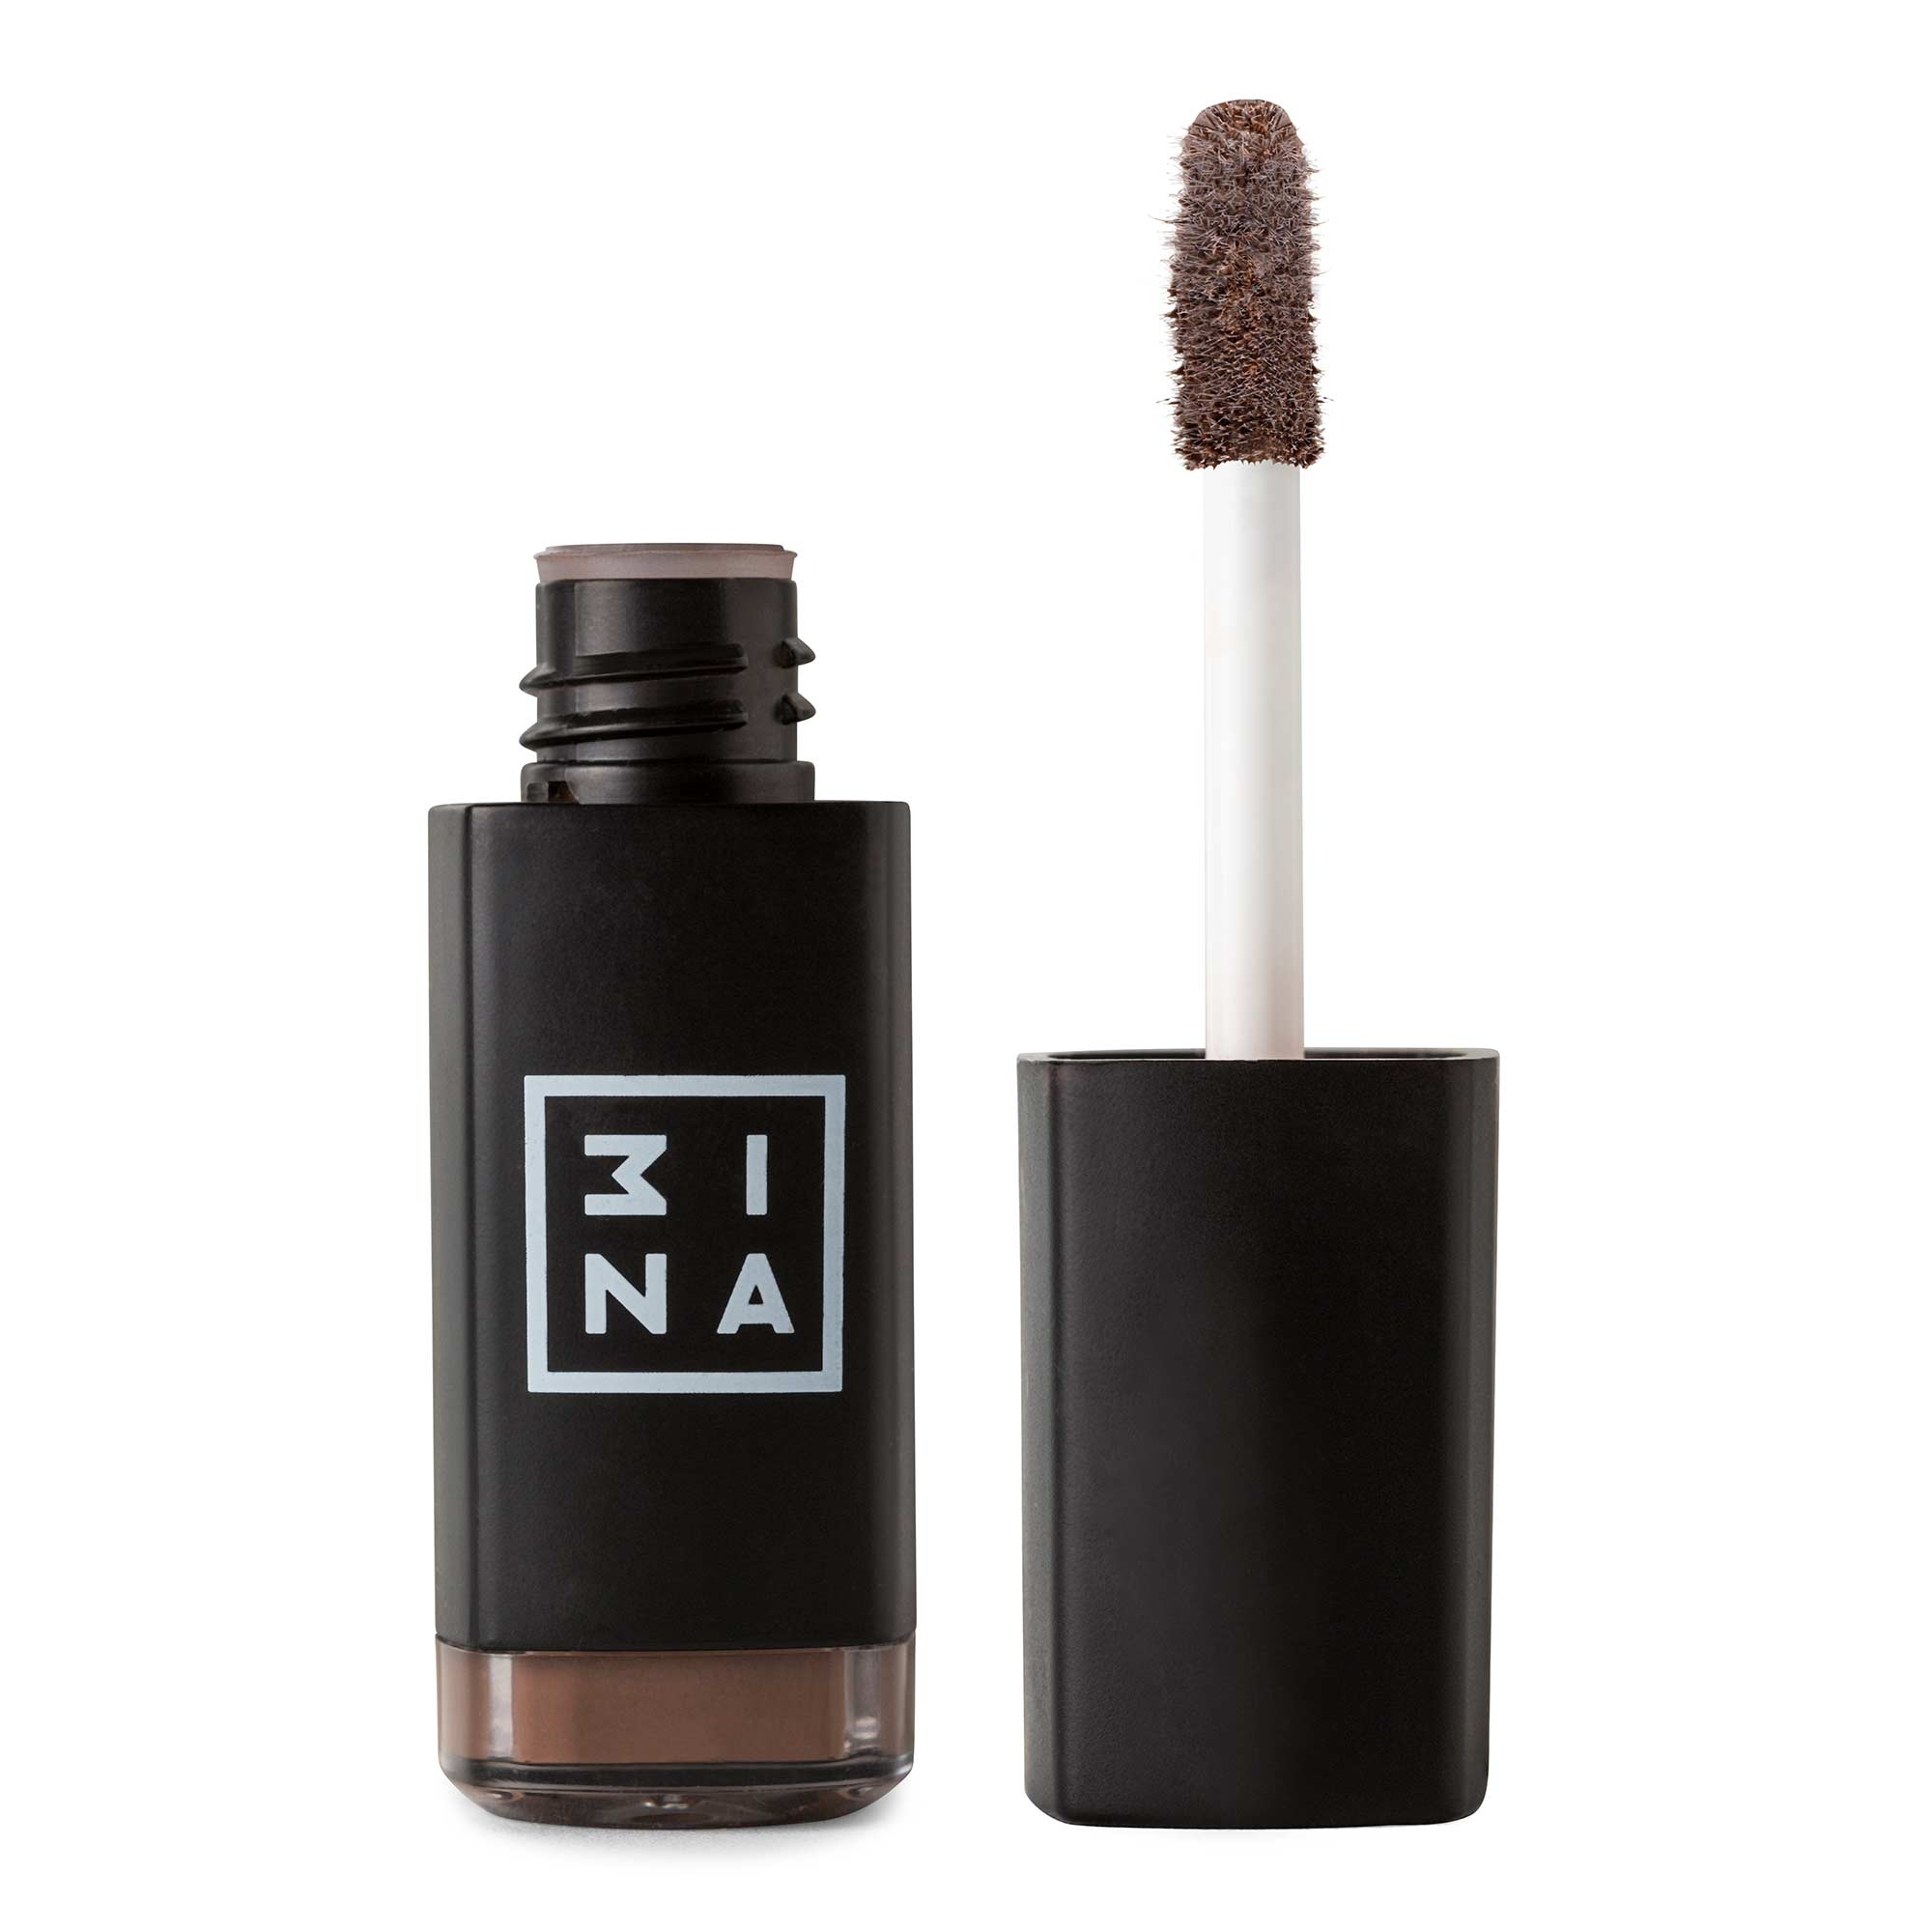 3INA Makeup | The Longwear Lipstick 518 Brown